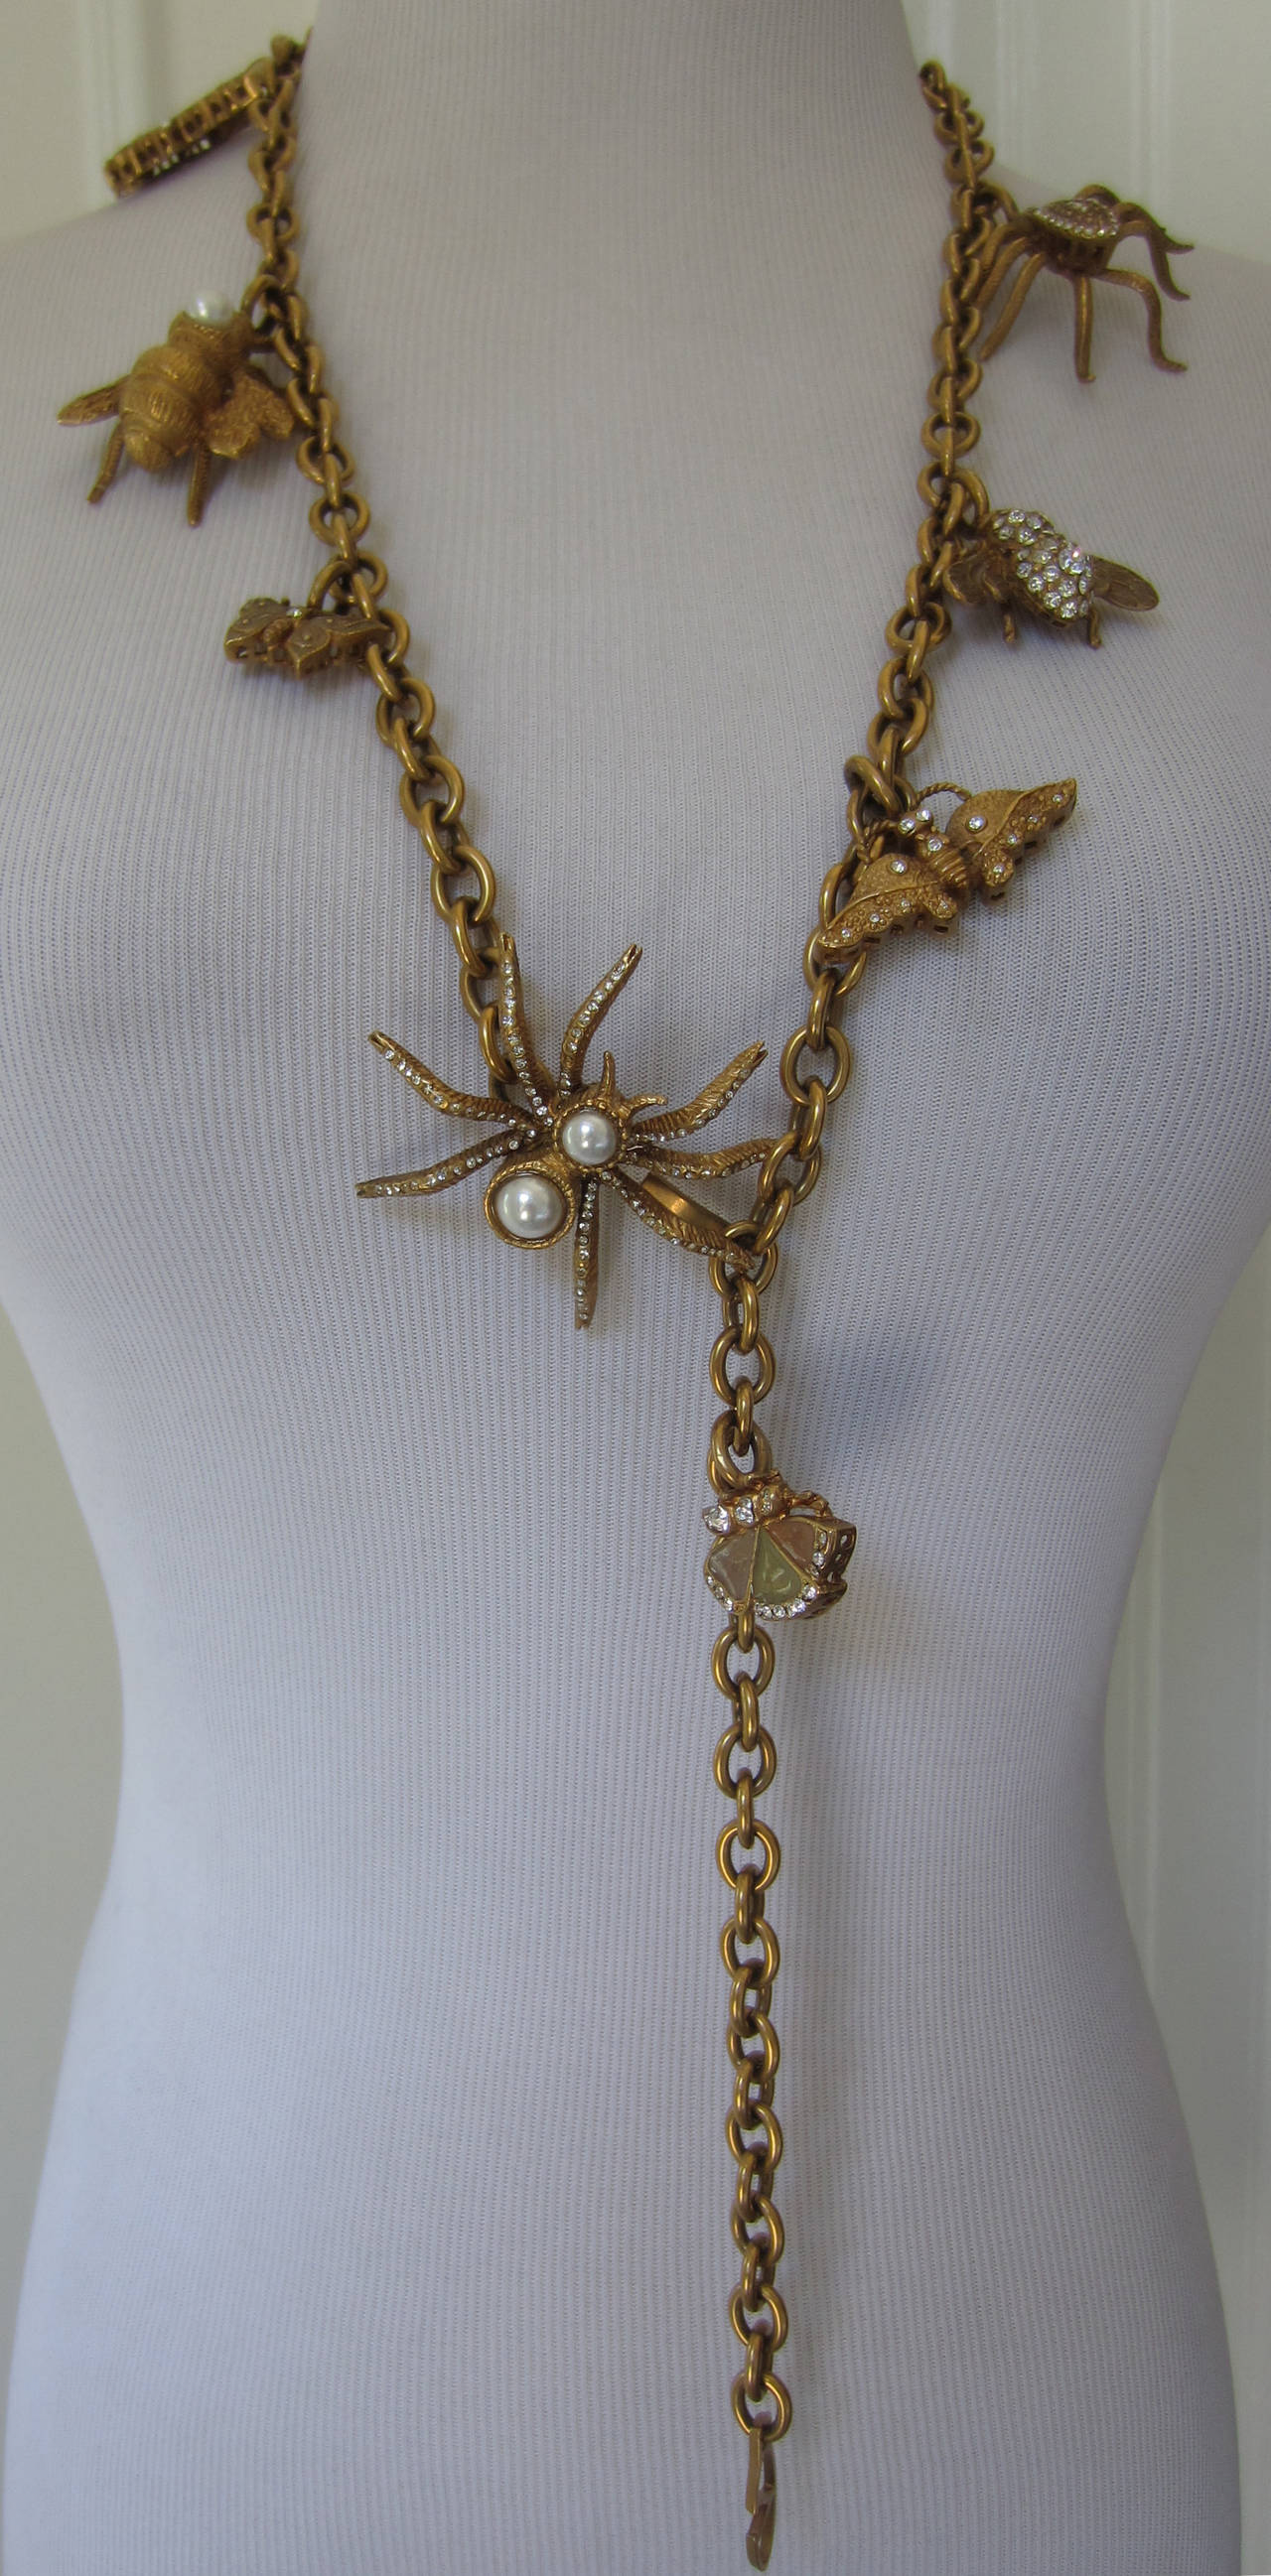 This  rare Valentino charm belt is whimsical and unique. Charms are featured as little creatures adorned with pearls and stones... Can be worn as a necklace as well... Have fun with this wonderful piece of jewelry/belt...